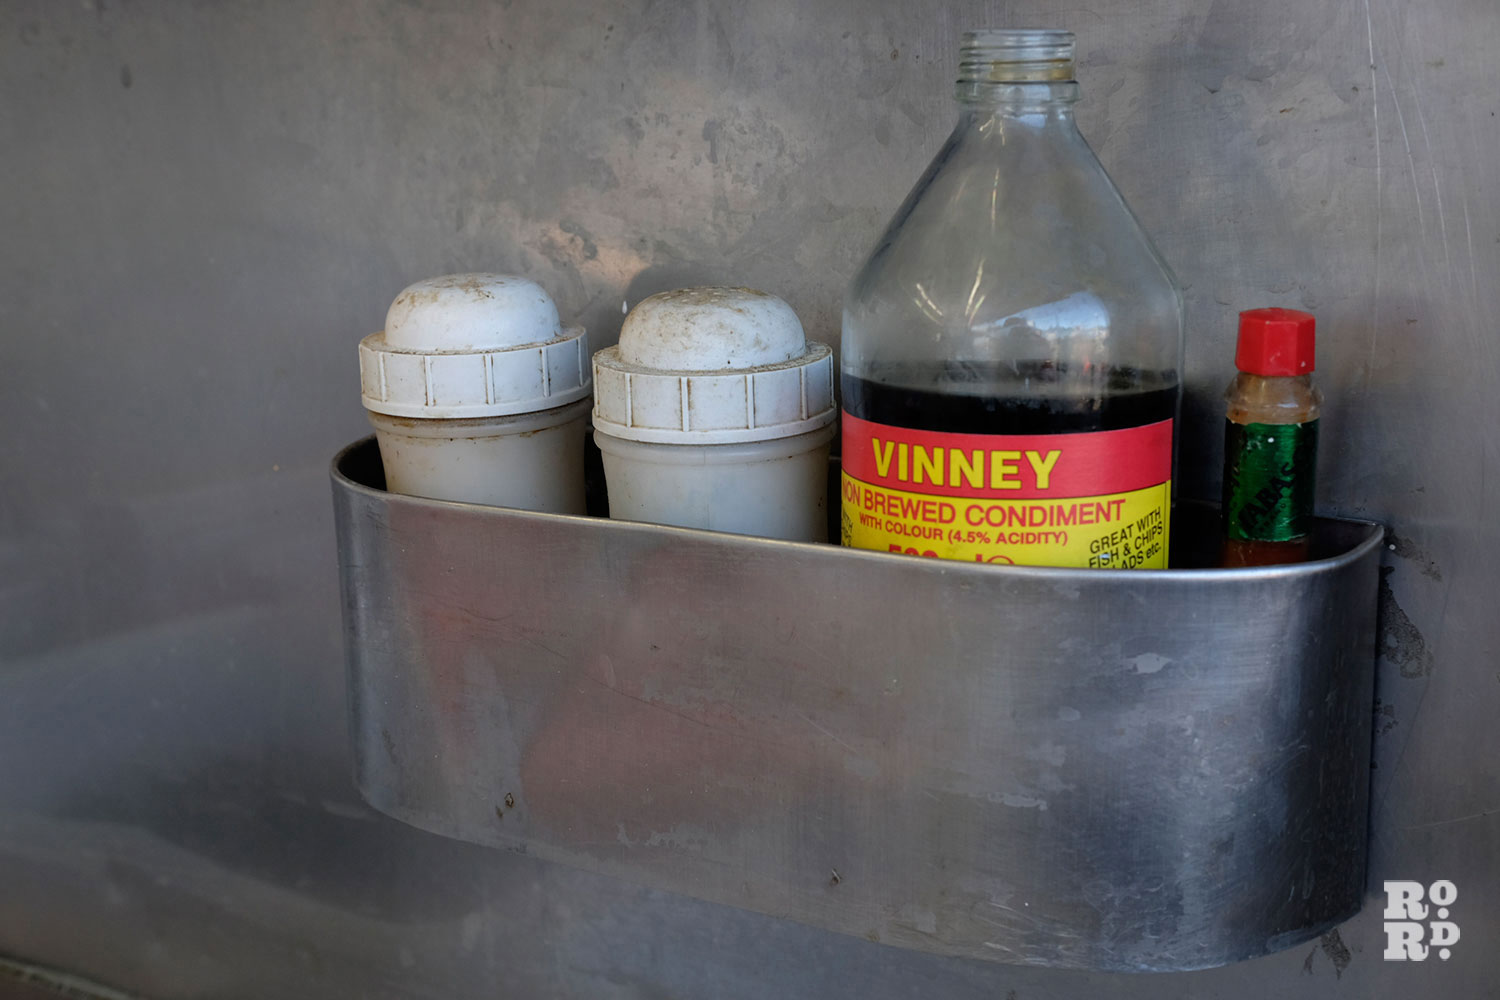 The DIY station with Vinneys non-brewed condiment, salt, pepper and tabasco